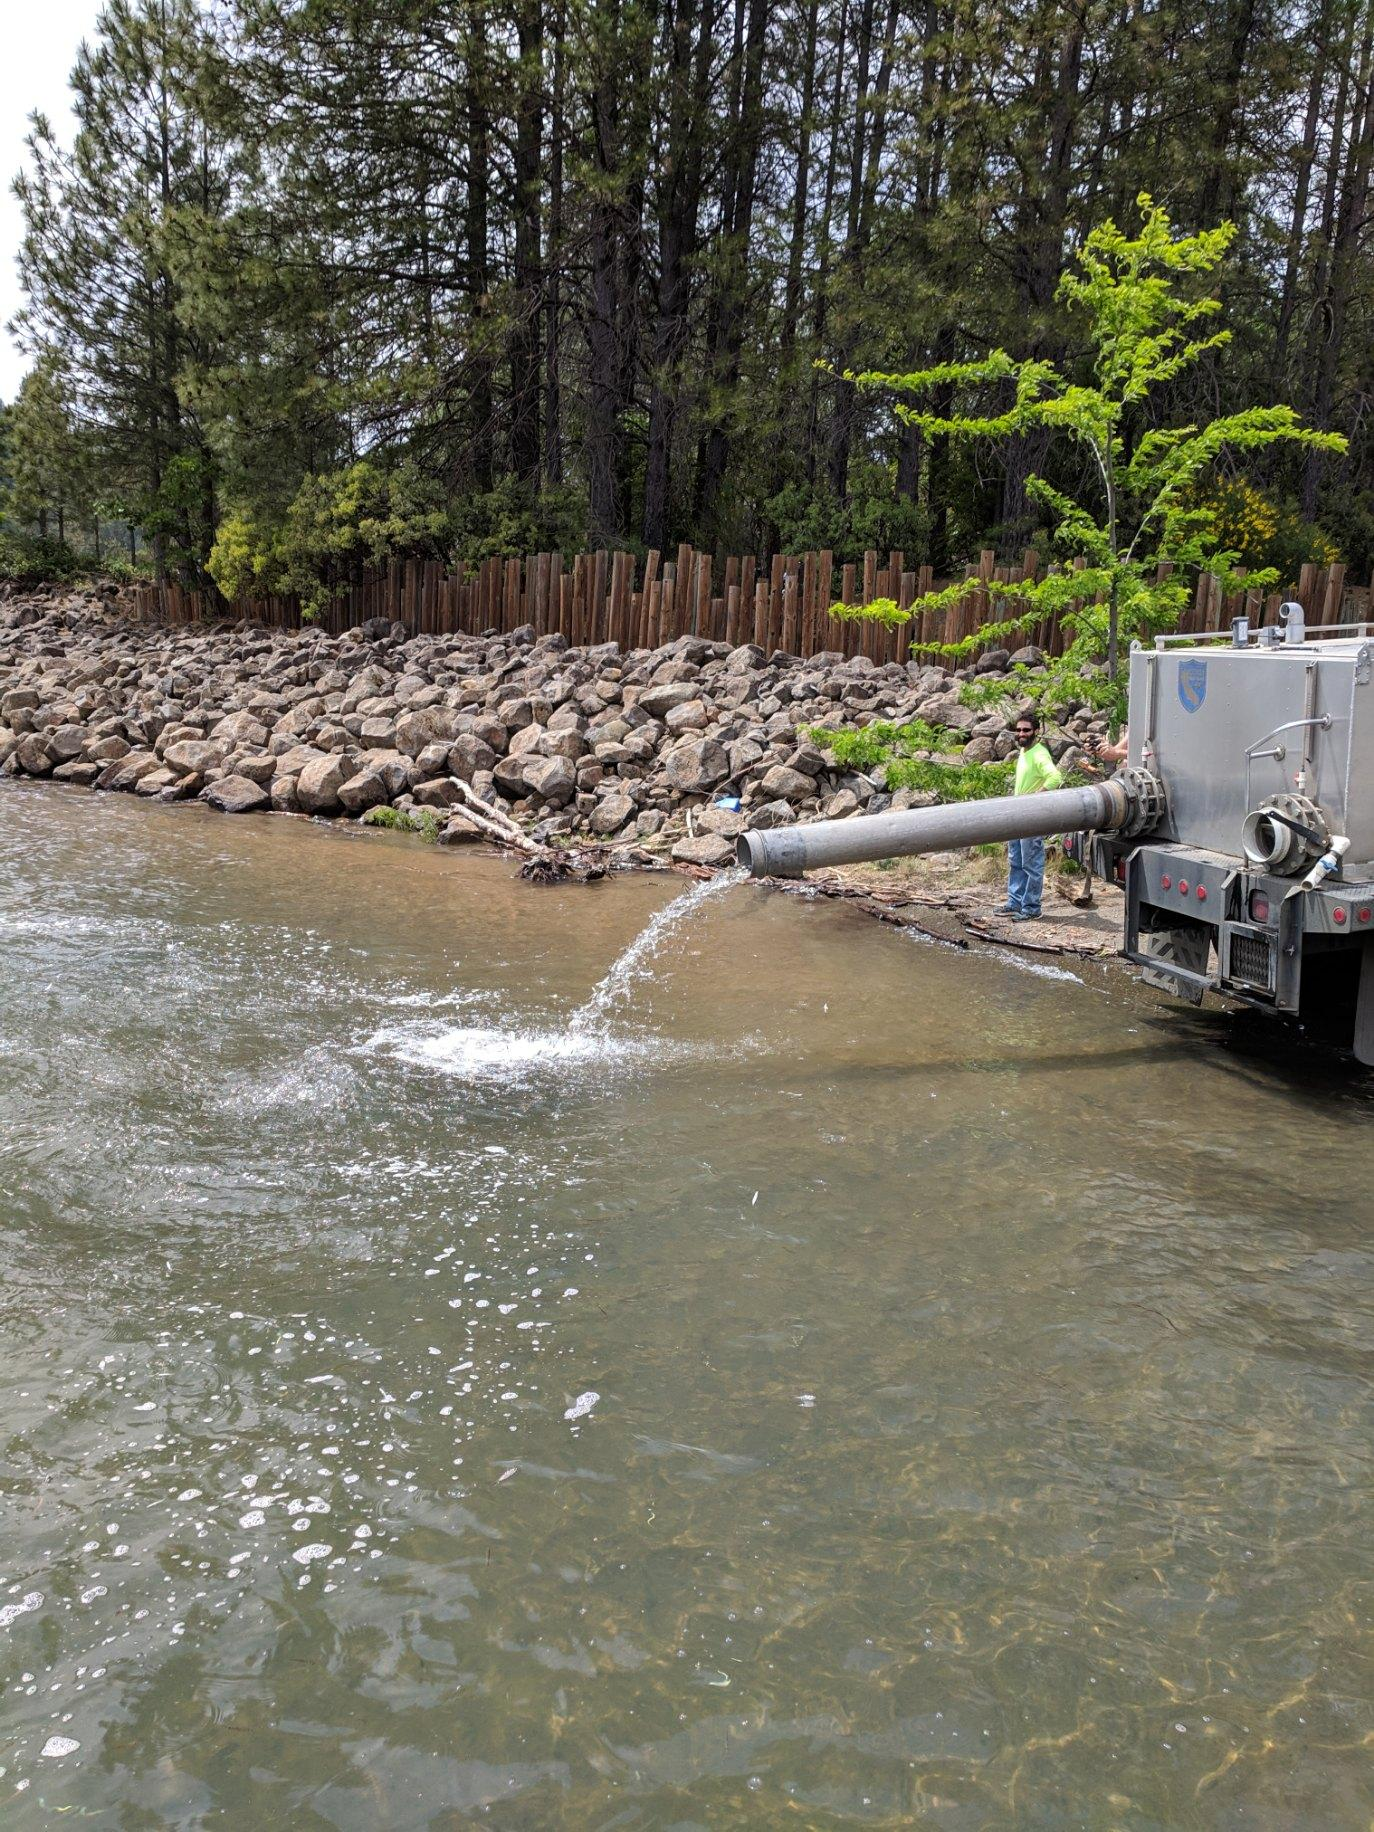 5/13/2019 87,000 Kokanee salmon being planted in Shasta Lake!